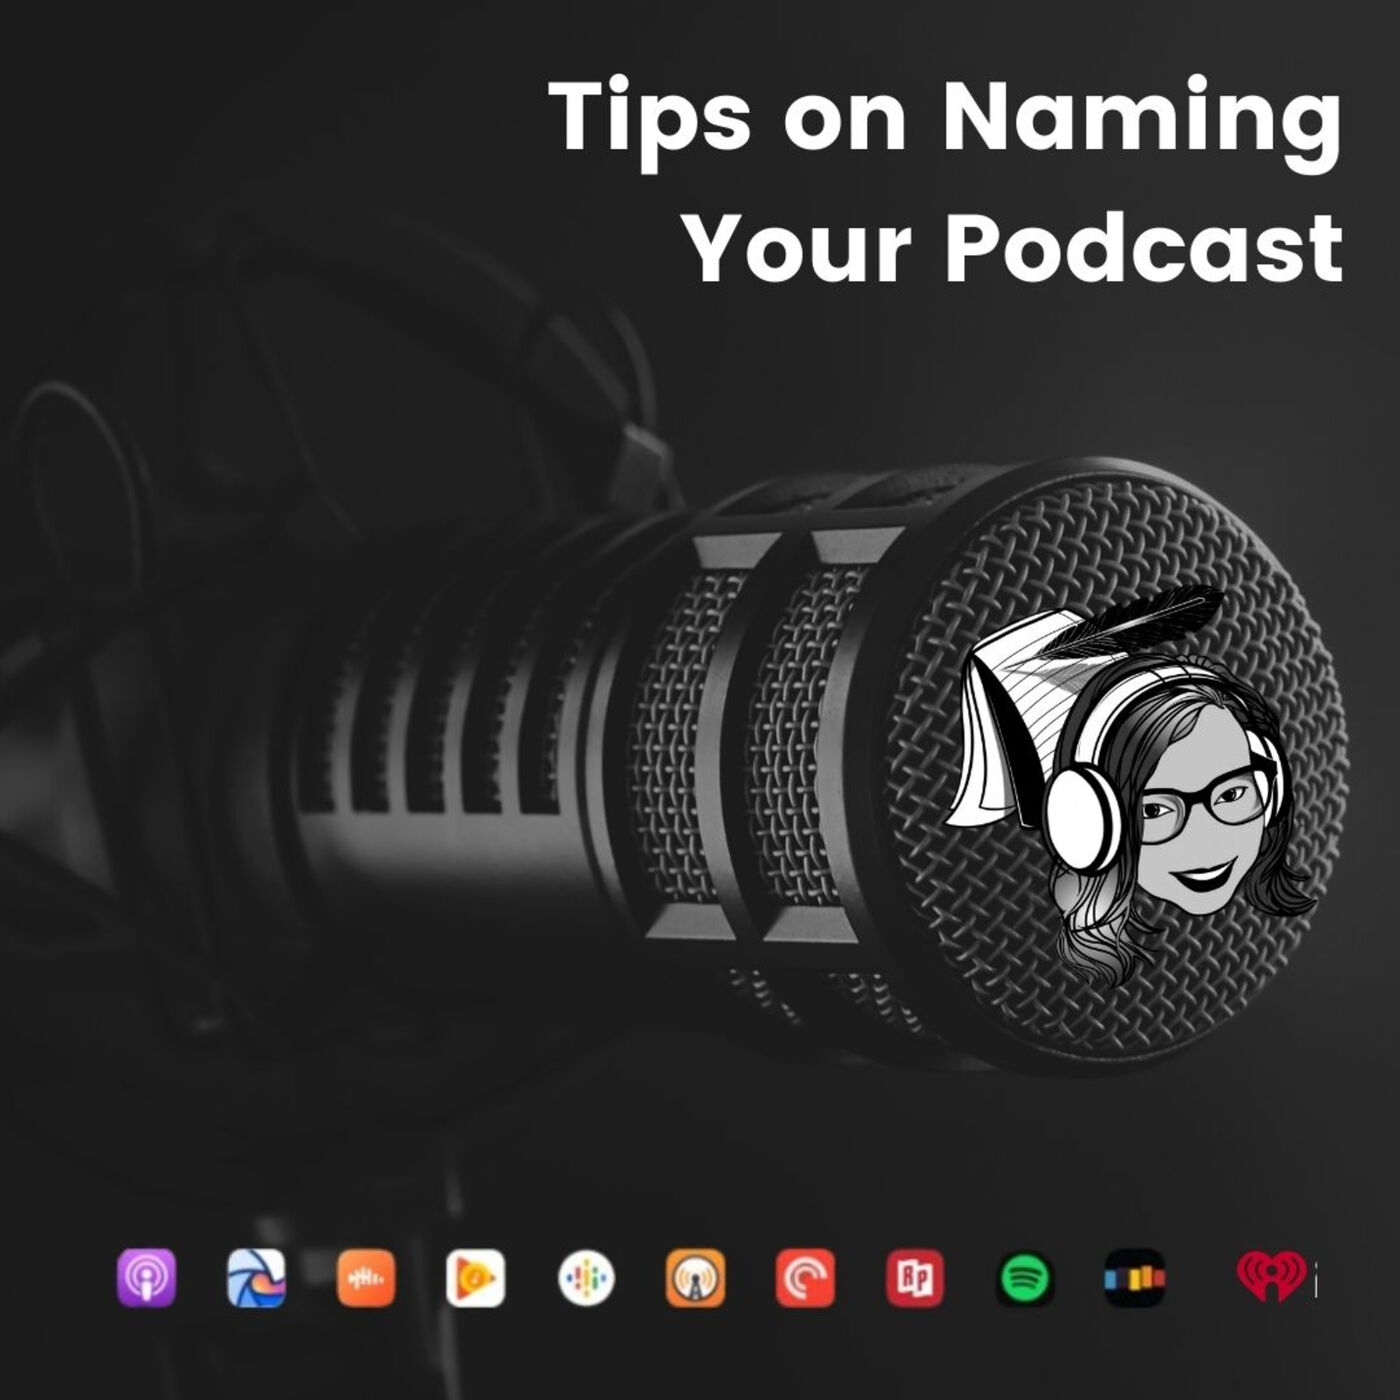 Tips on Naming Your Podcast #237